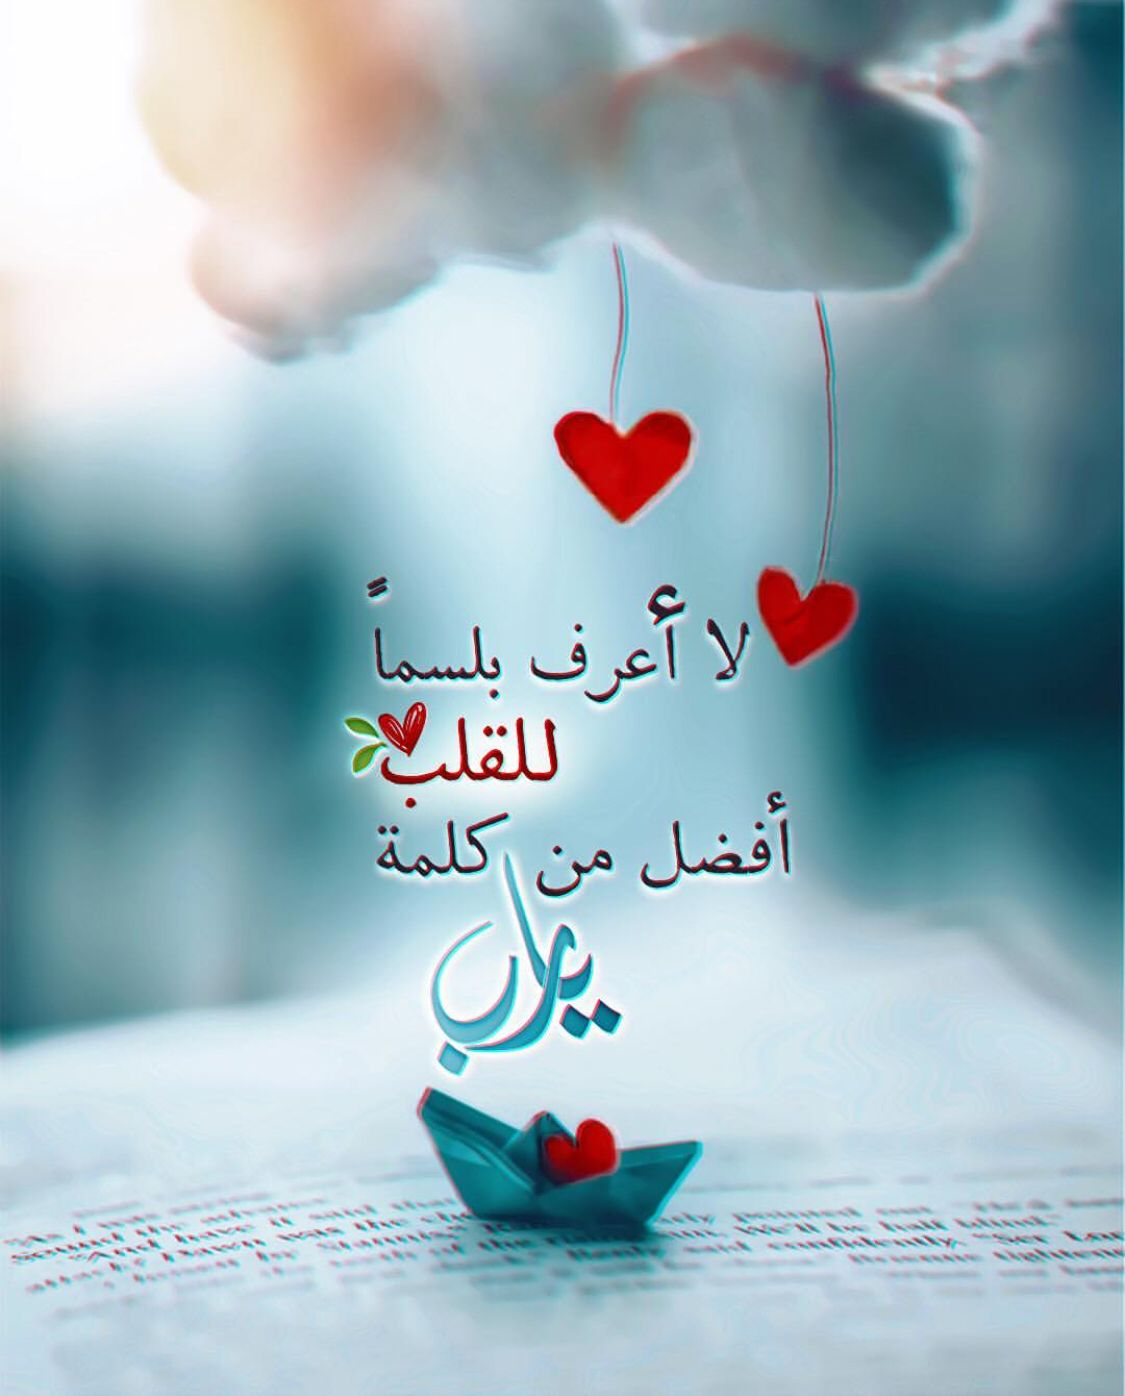 Pin By Kima On Duea دعاء Islamic Quotes Wallpaper Ramadan Quotes Islamic Love Quotes